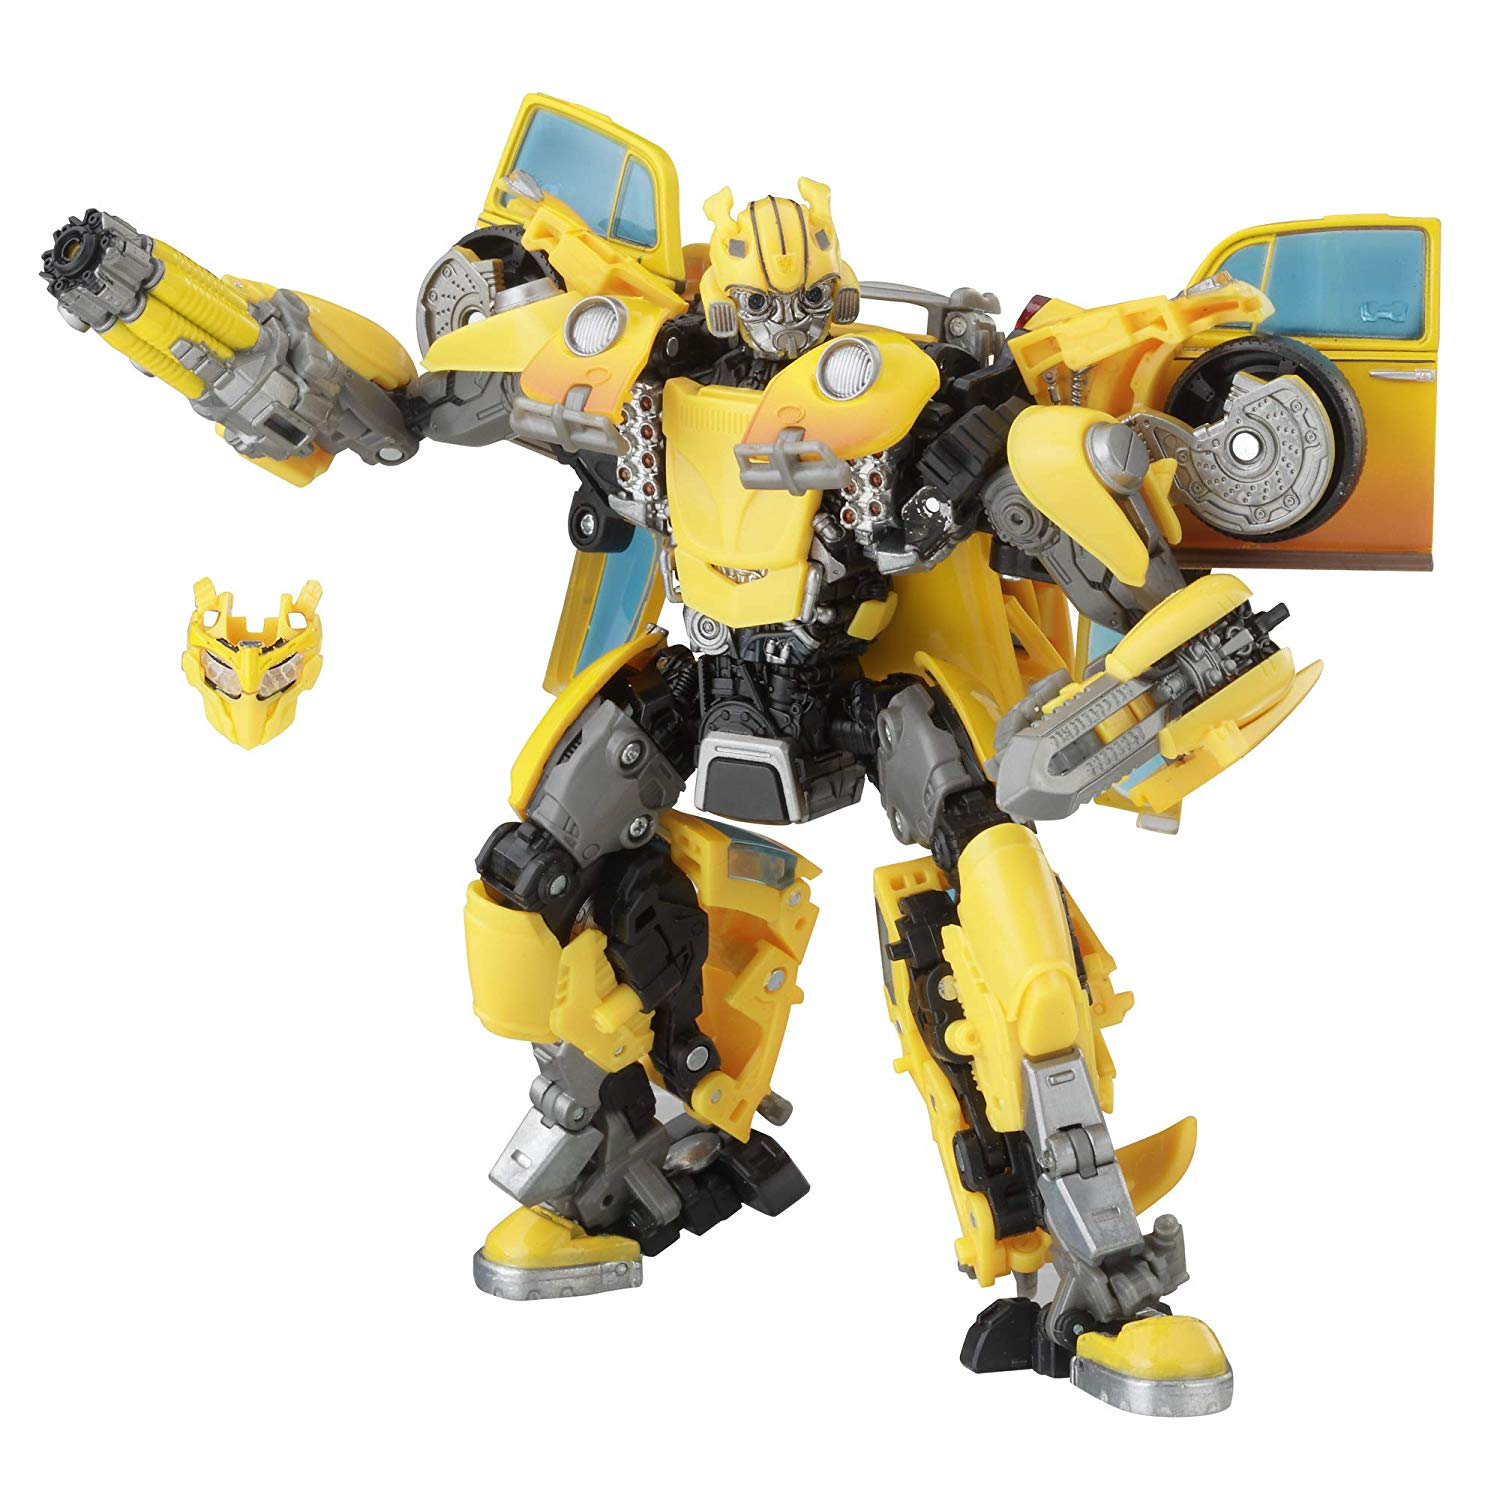 Best Toys for 7 Year Old Boys - Bumblebee